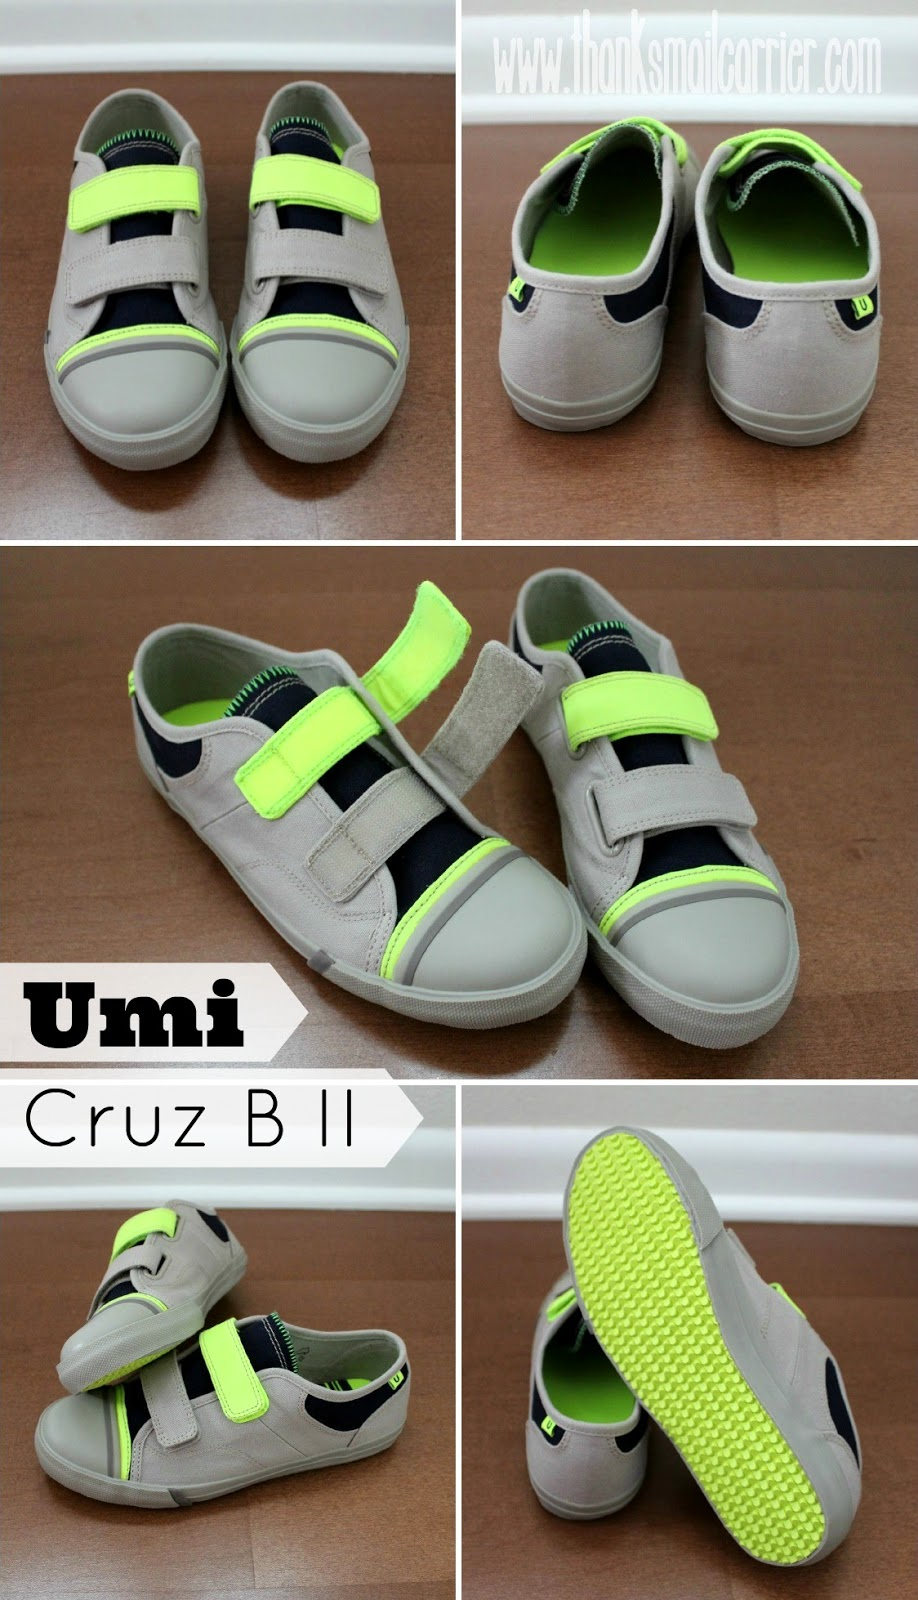 Umi Cruz B II review